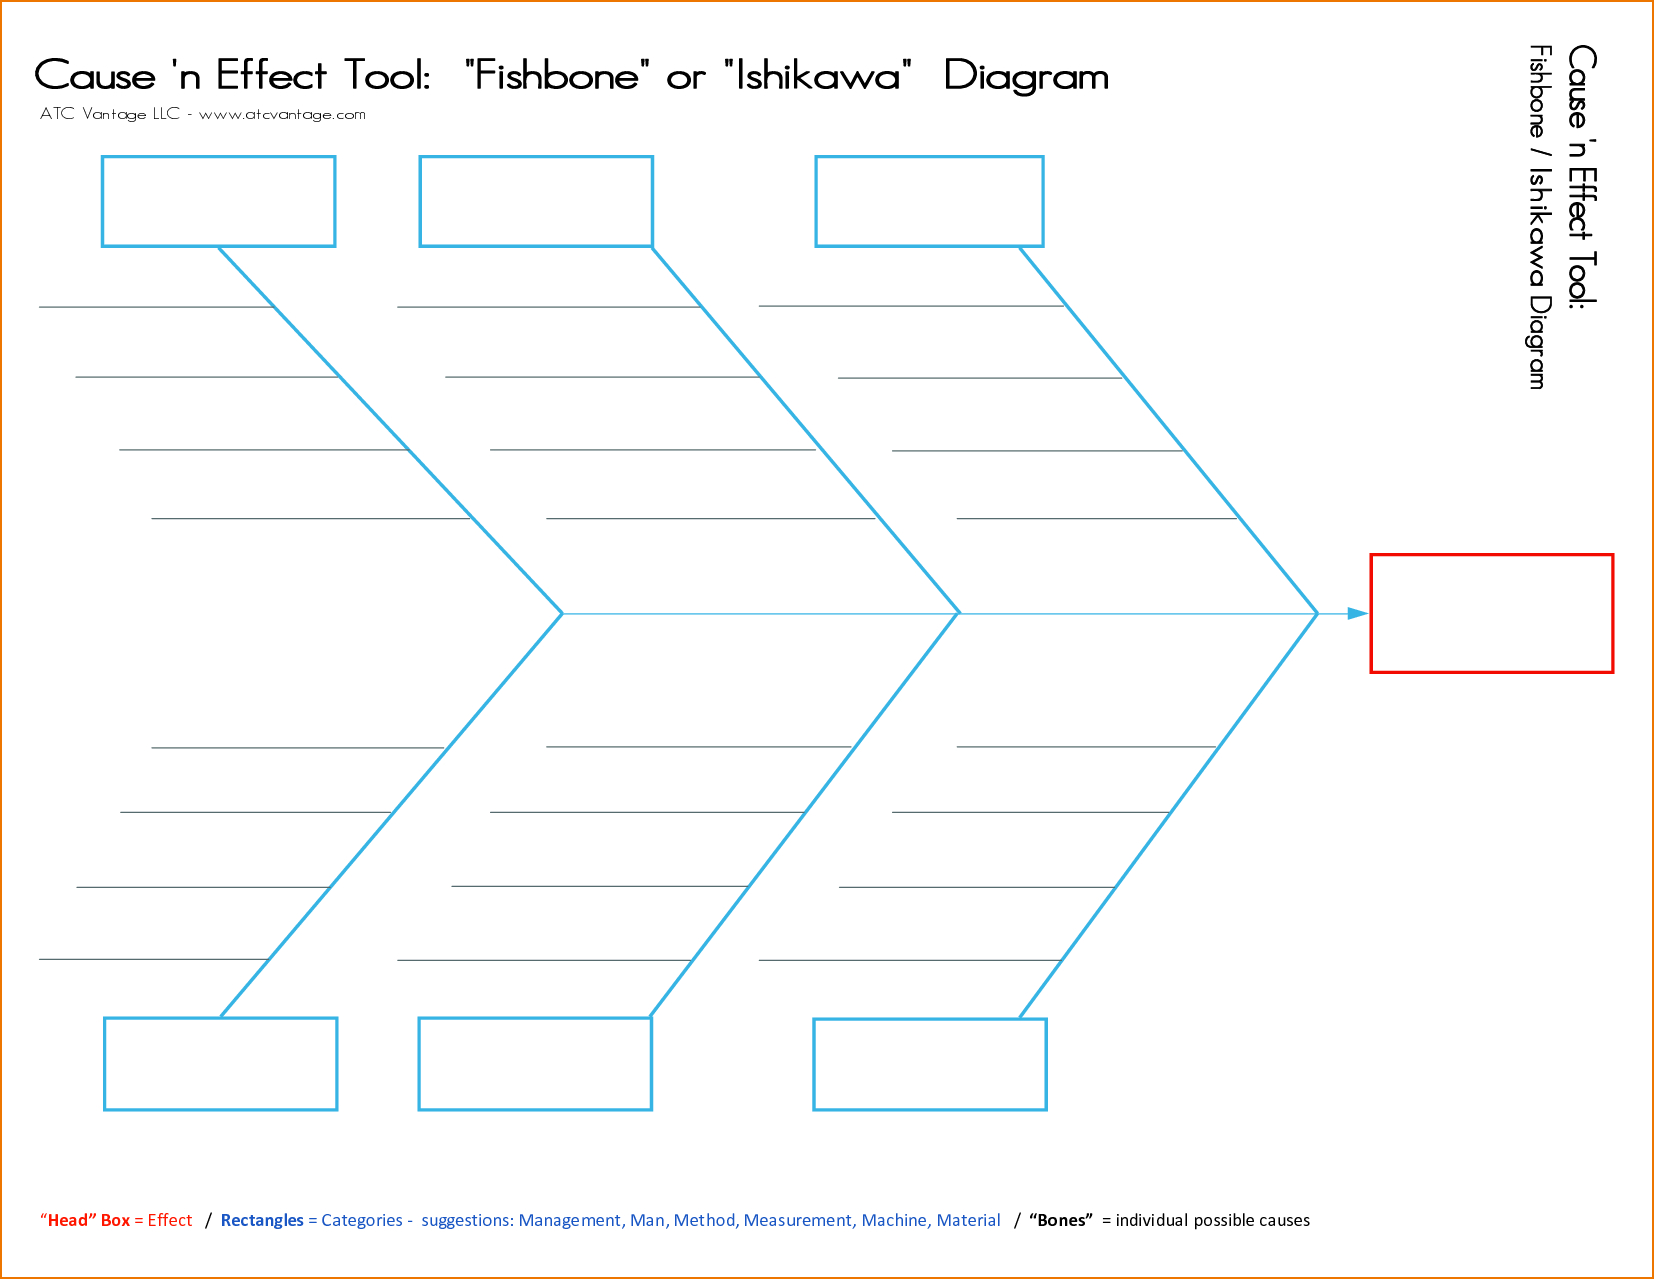 Cause And Effect Diagram Template 003 Template Ideas Cause And Effect Diagram Blank Shocking Fishbone